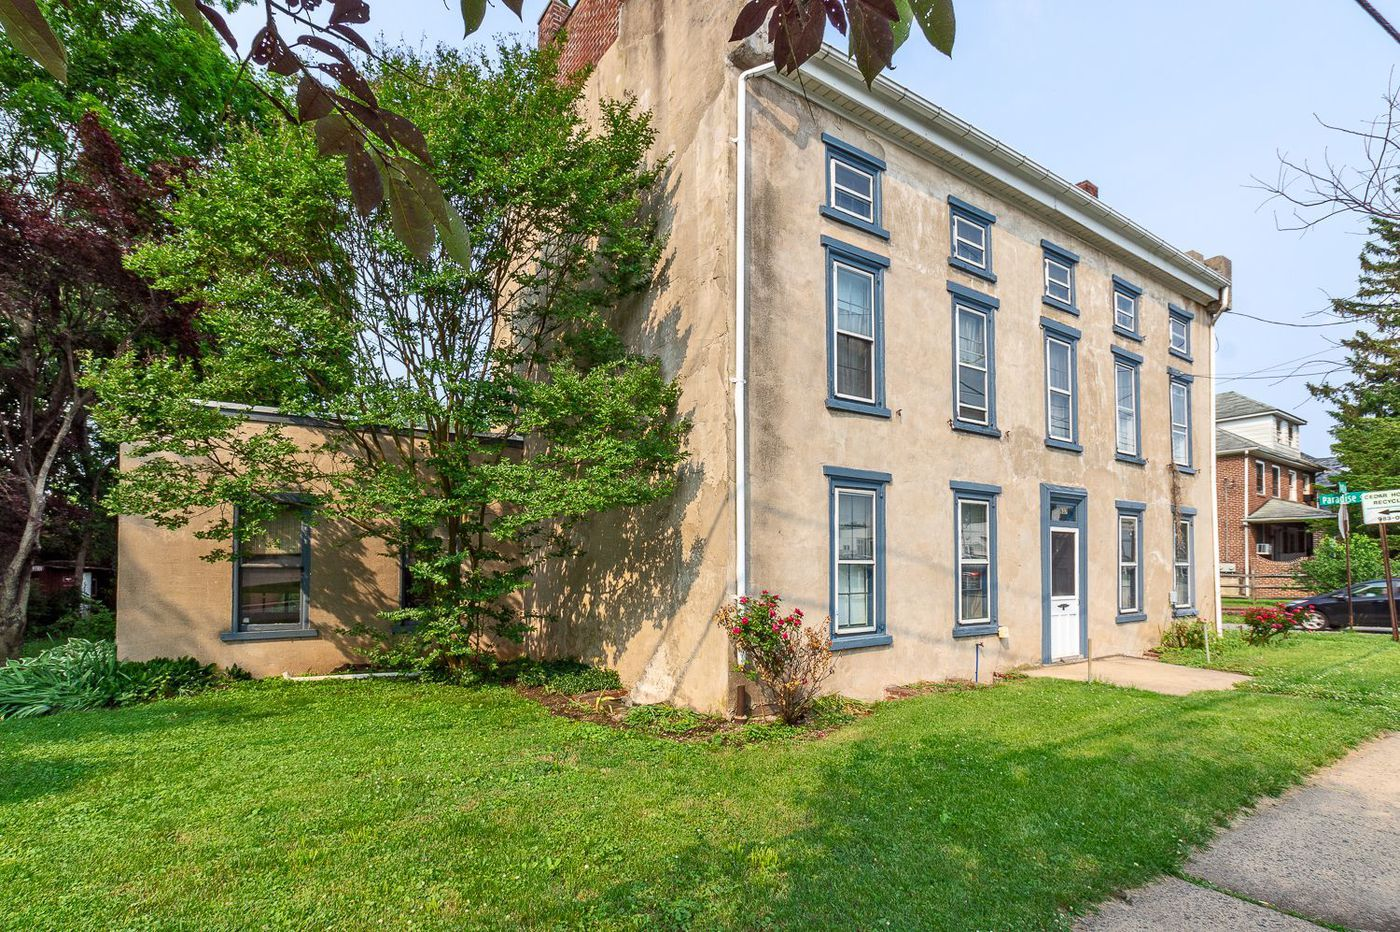 On the market: Large stone house in Phoenixville for $275,000